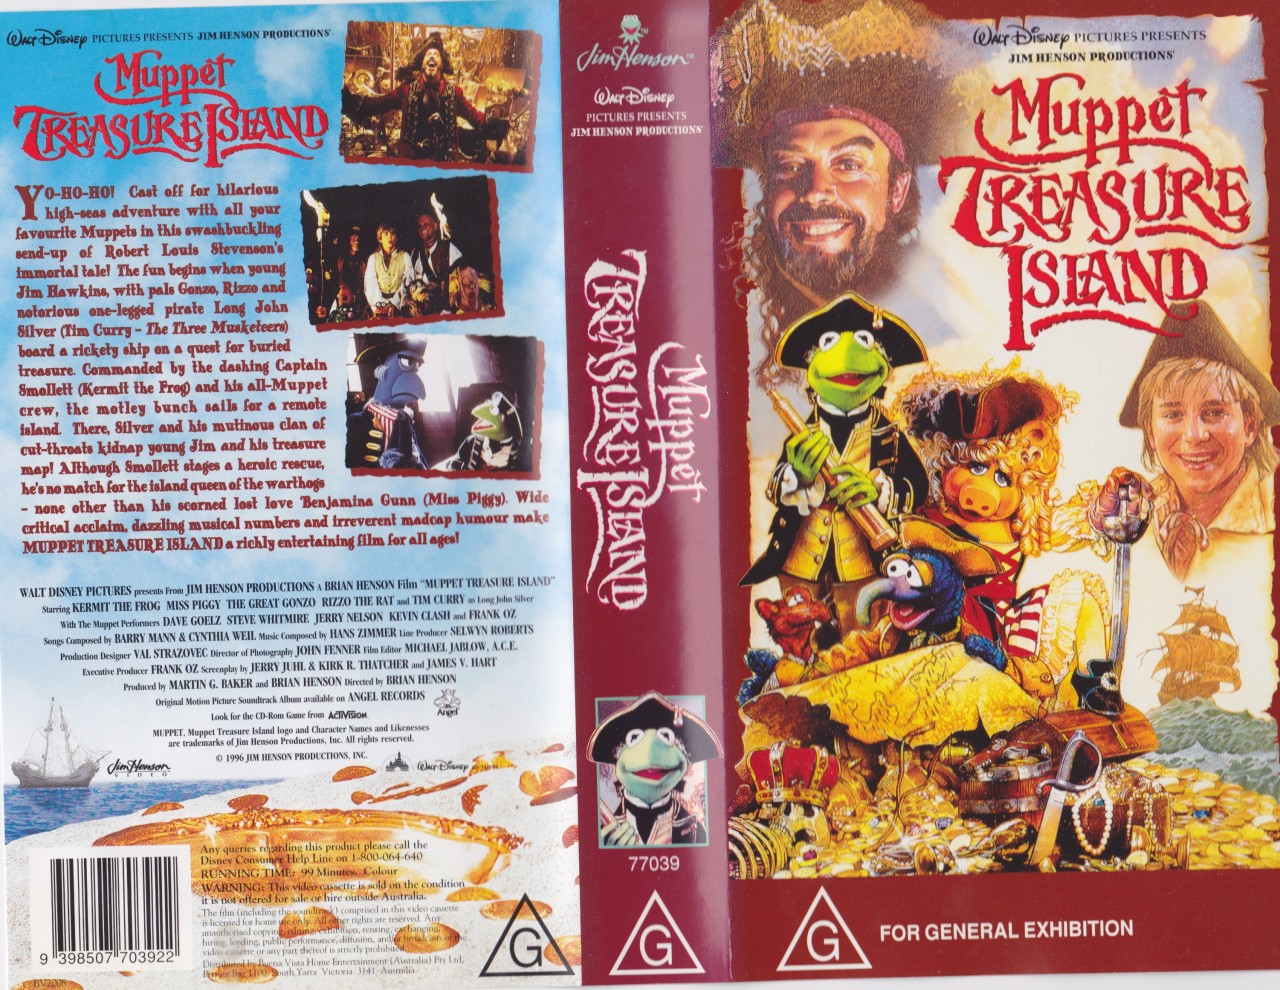 Muppet Treasure Island Dvd Cover